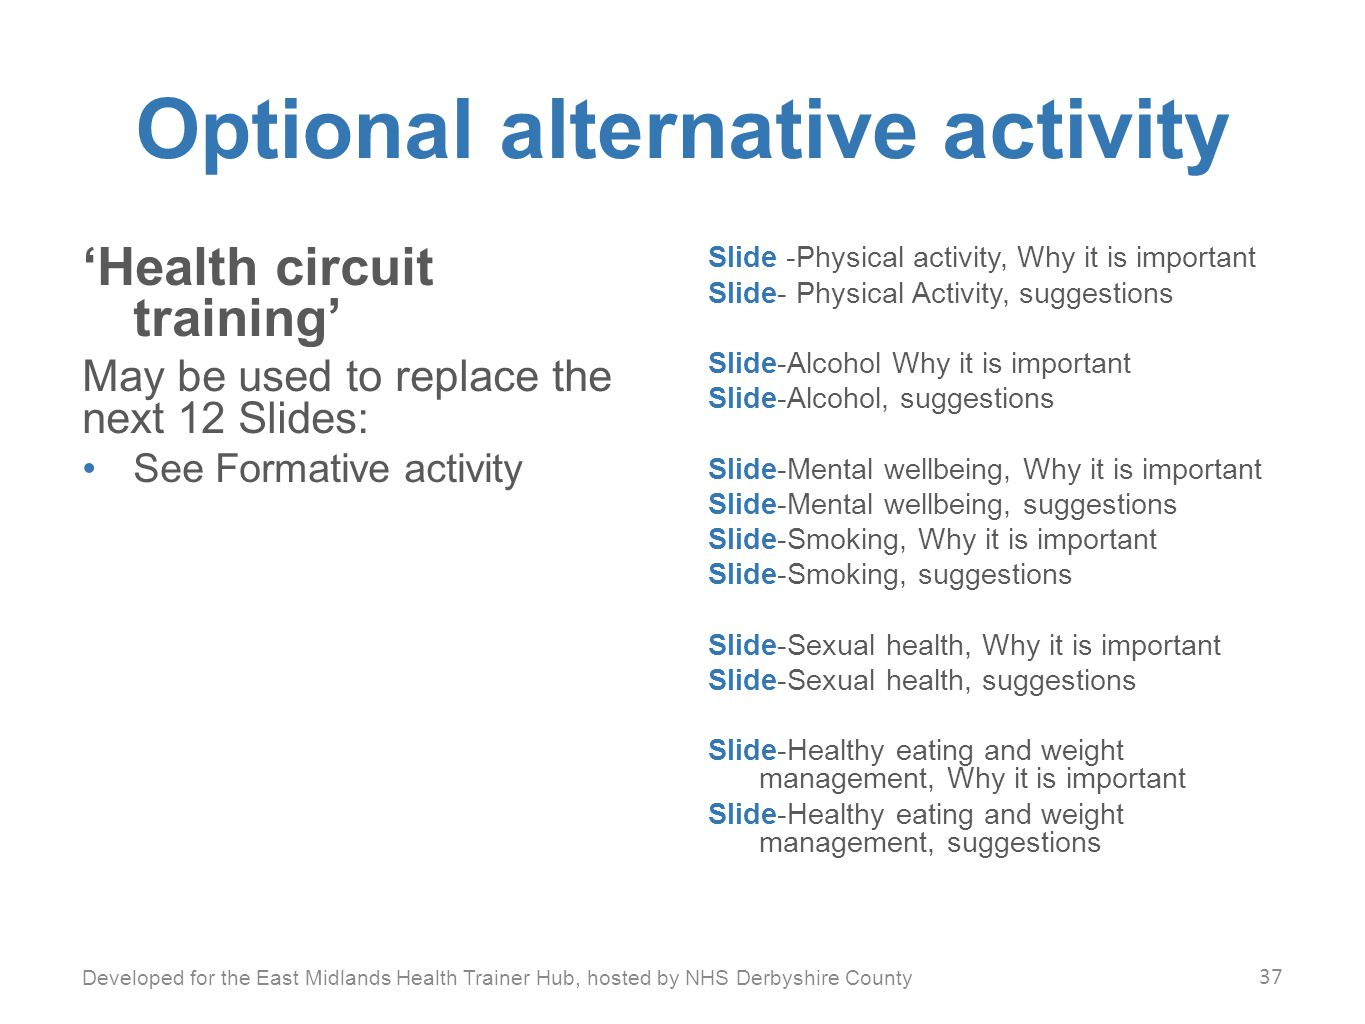 Optional alternative activity 'Health circuit training' May be used to replace the next 12 Slides: See Formative activity Slide -Physical activity, Why it is important Slide- Physical Activity, suggestions Slide-Alcohol Why it is important Slide-Alcohol, suggestions Slide-Mental wellbeing, Why it is important Slide-Mental wellbeing, suggestions Slide-Smoking, Why it is important Slide-Smoking, suggestions Slide-Sexual health, Why it is important Slide-Sexual health, suggestions Slide-Healthy eating and weight management, Why it is important Slide-Healthy eating and weight management, suggestions Developed for the East Midlands Health Trainer Hub, hosted by NHS Derbyshire County 37